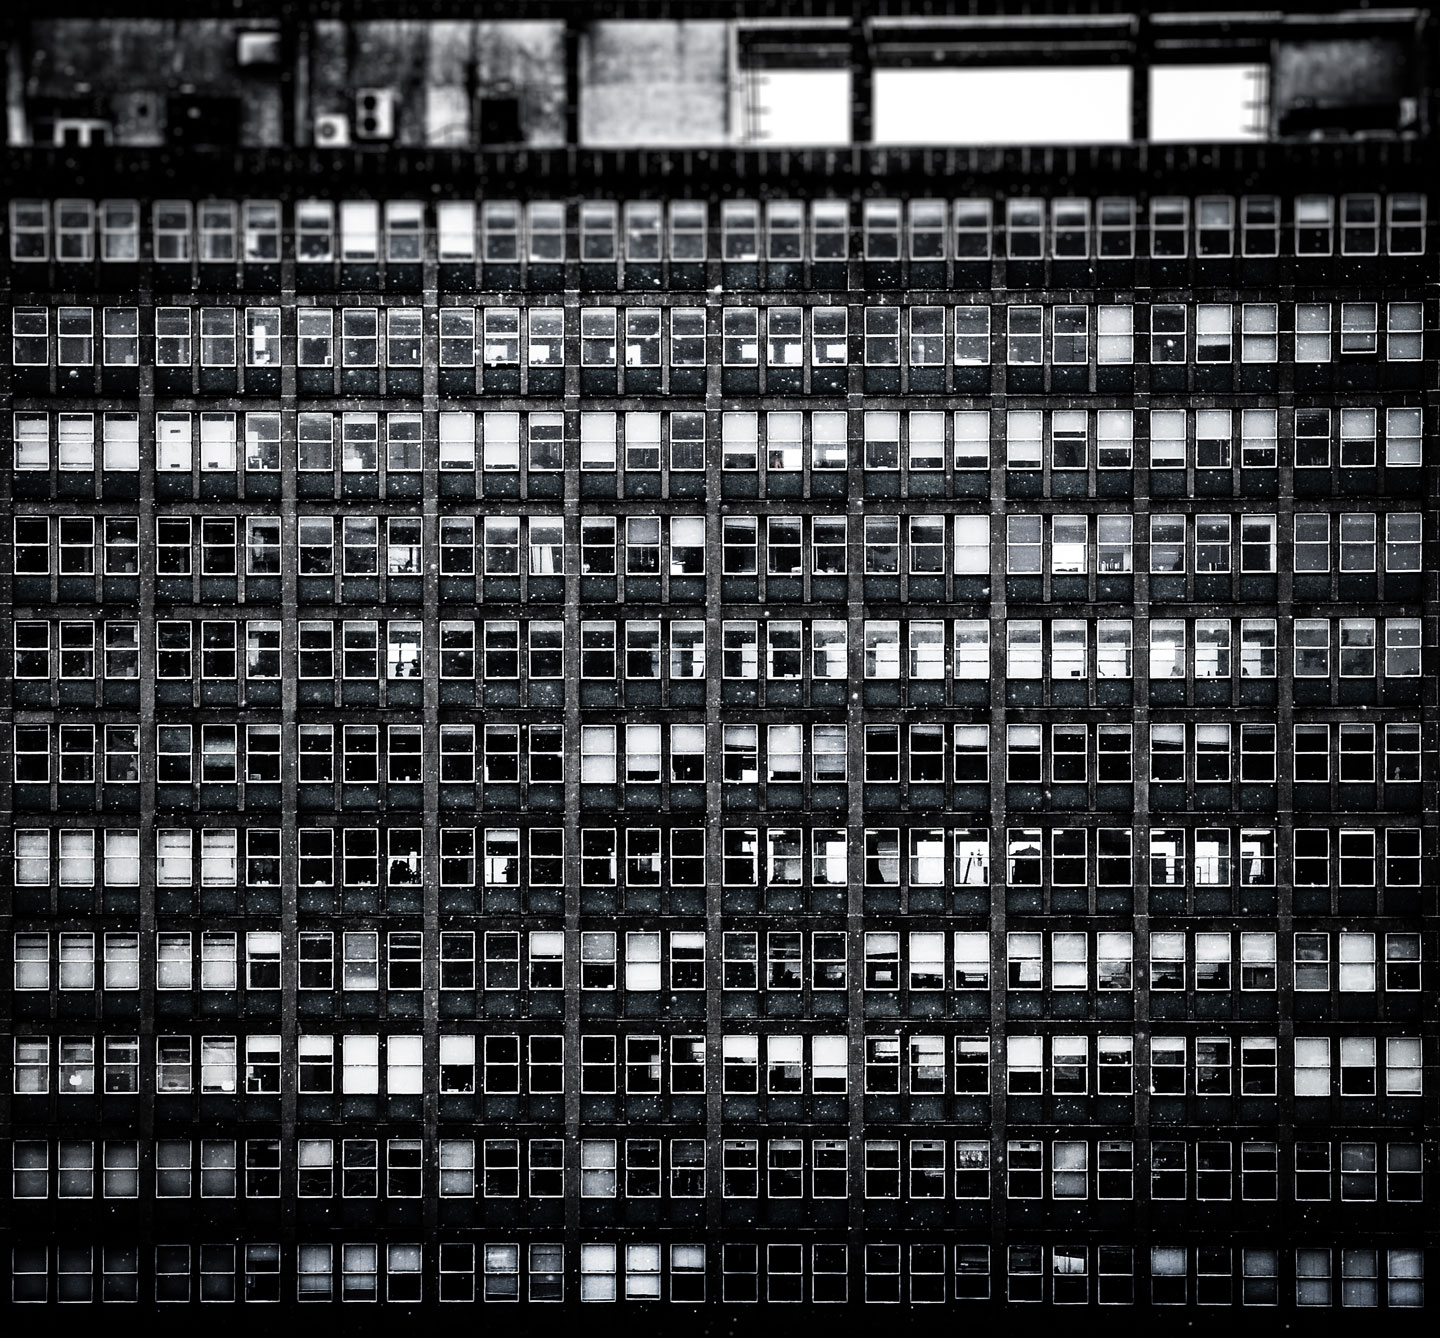 330 Windows